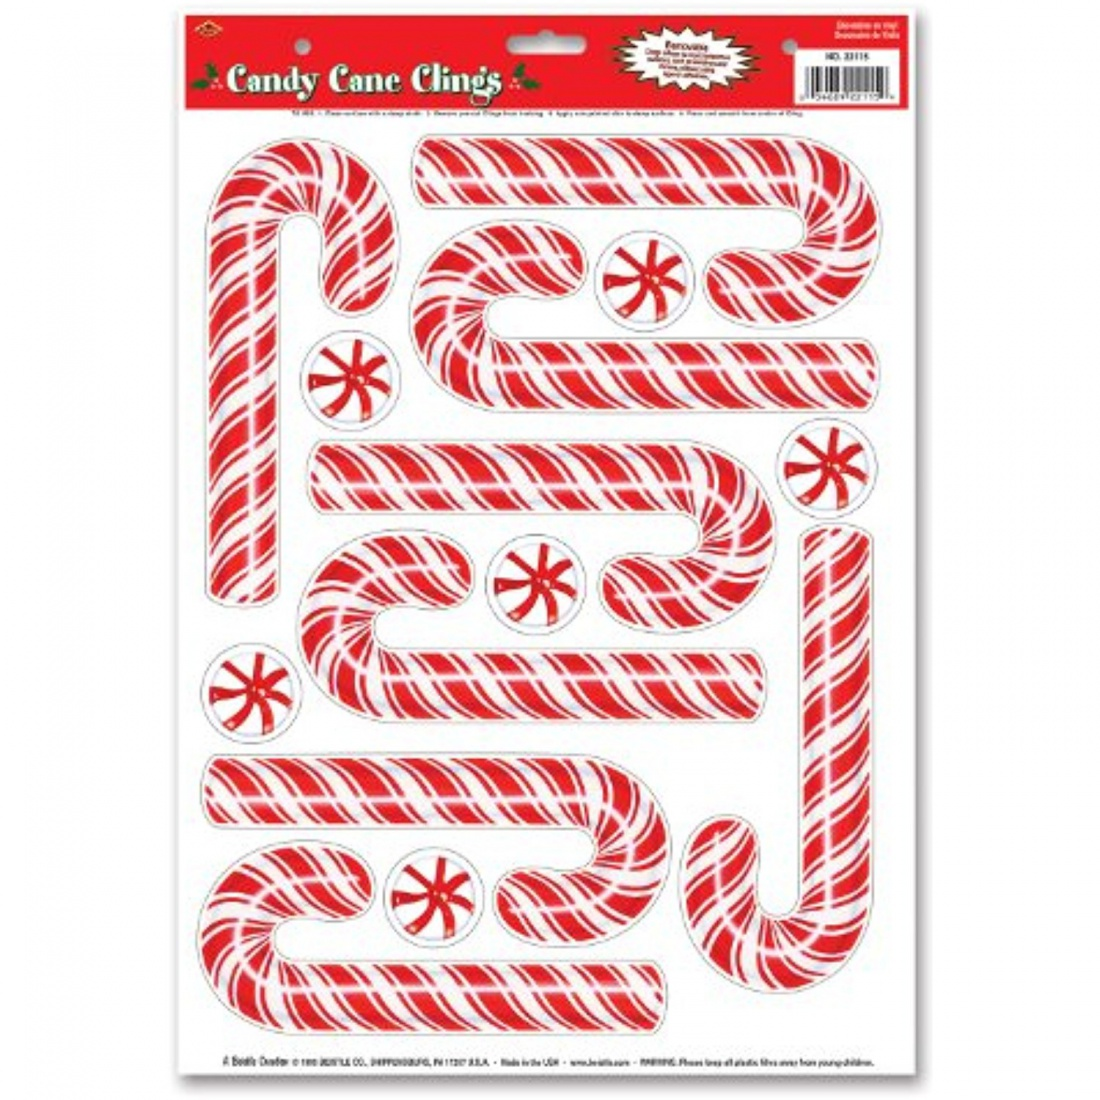 Candy Cane Clings